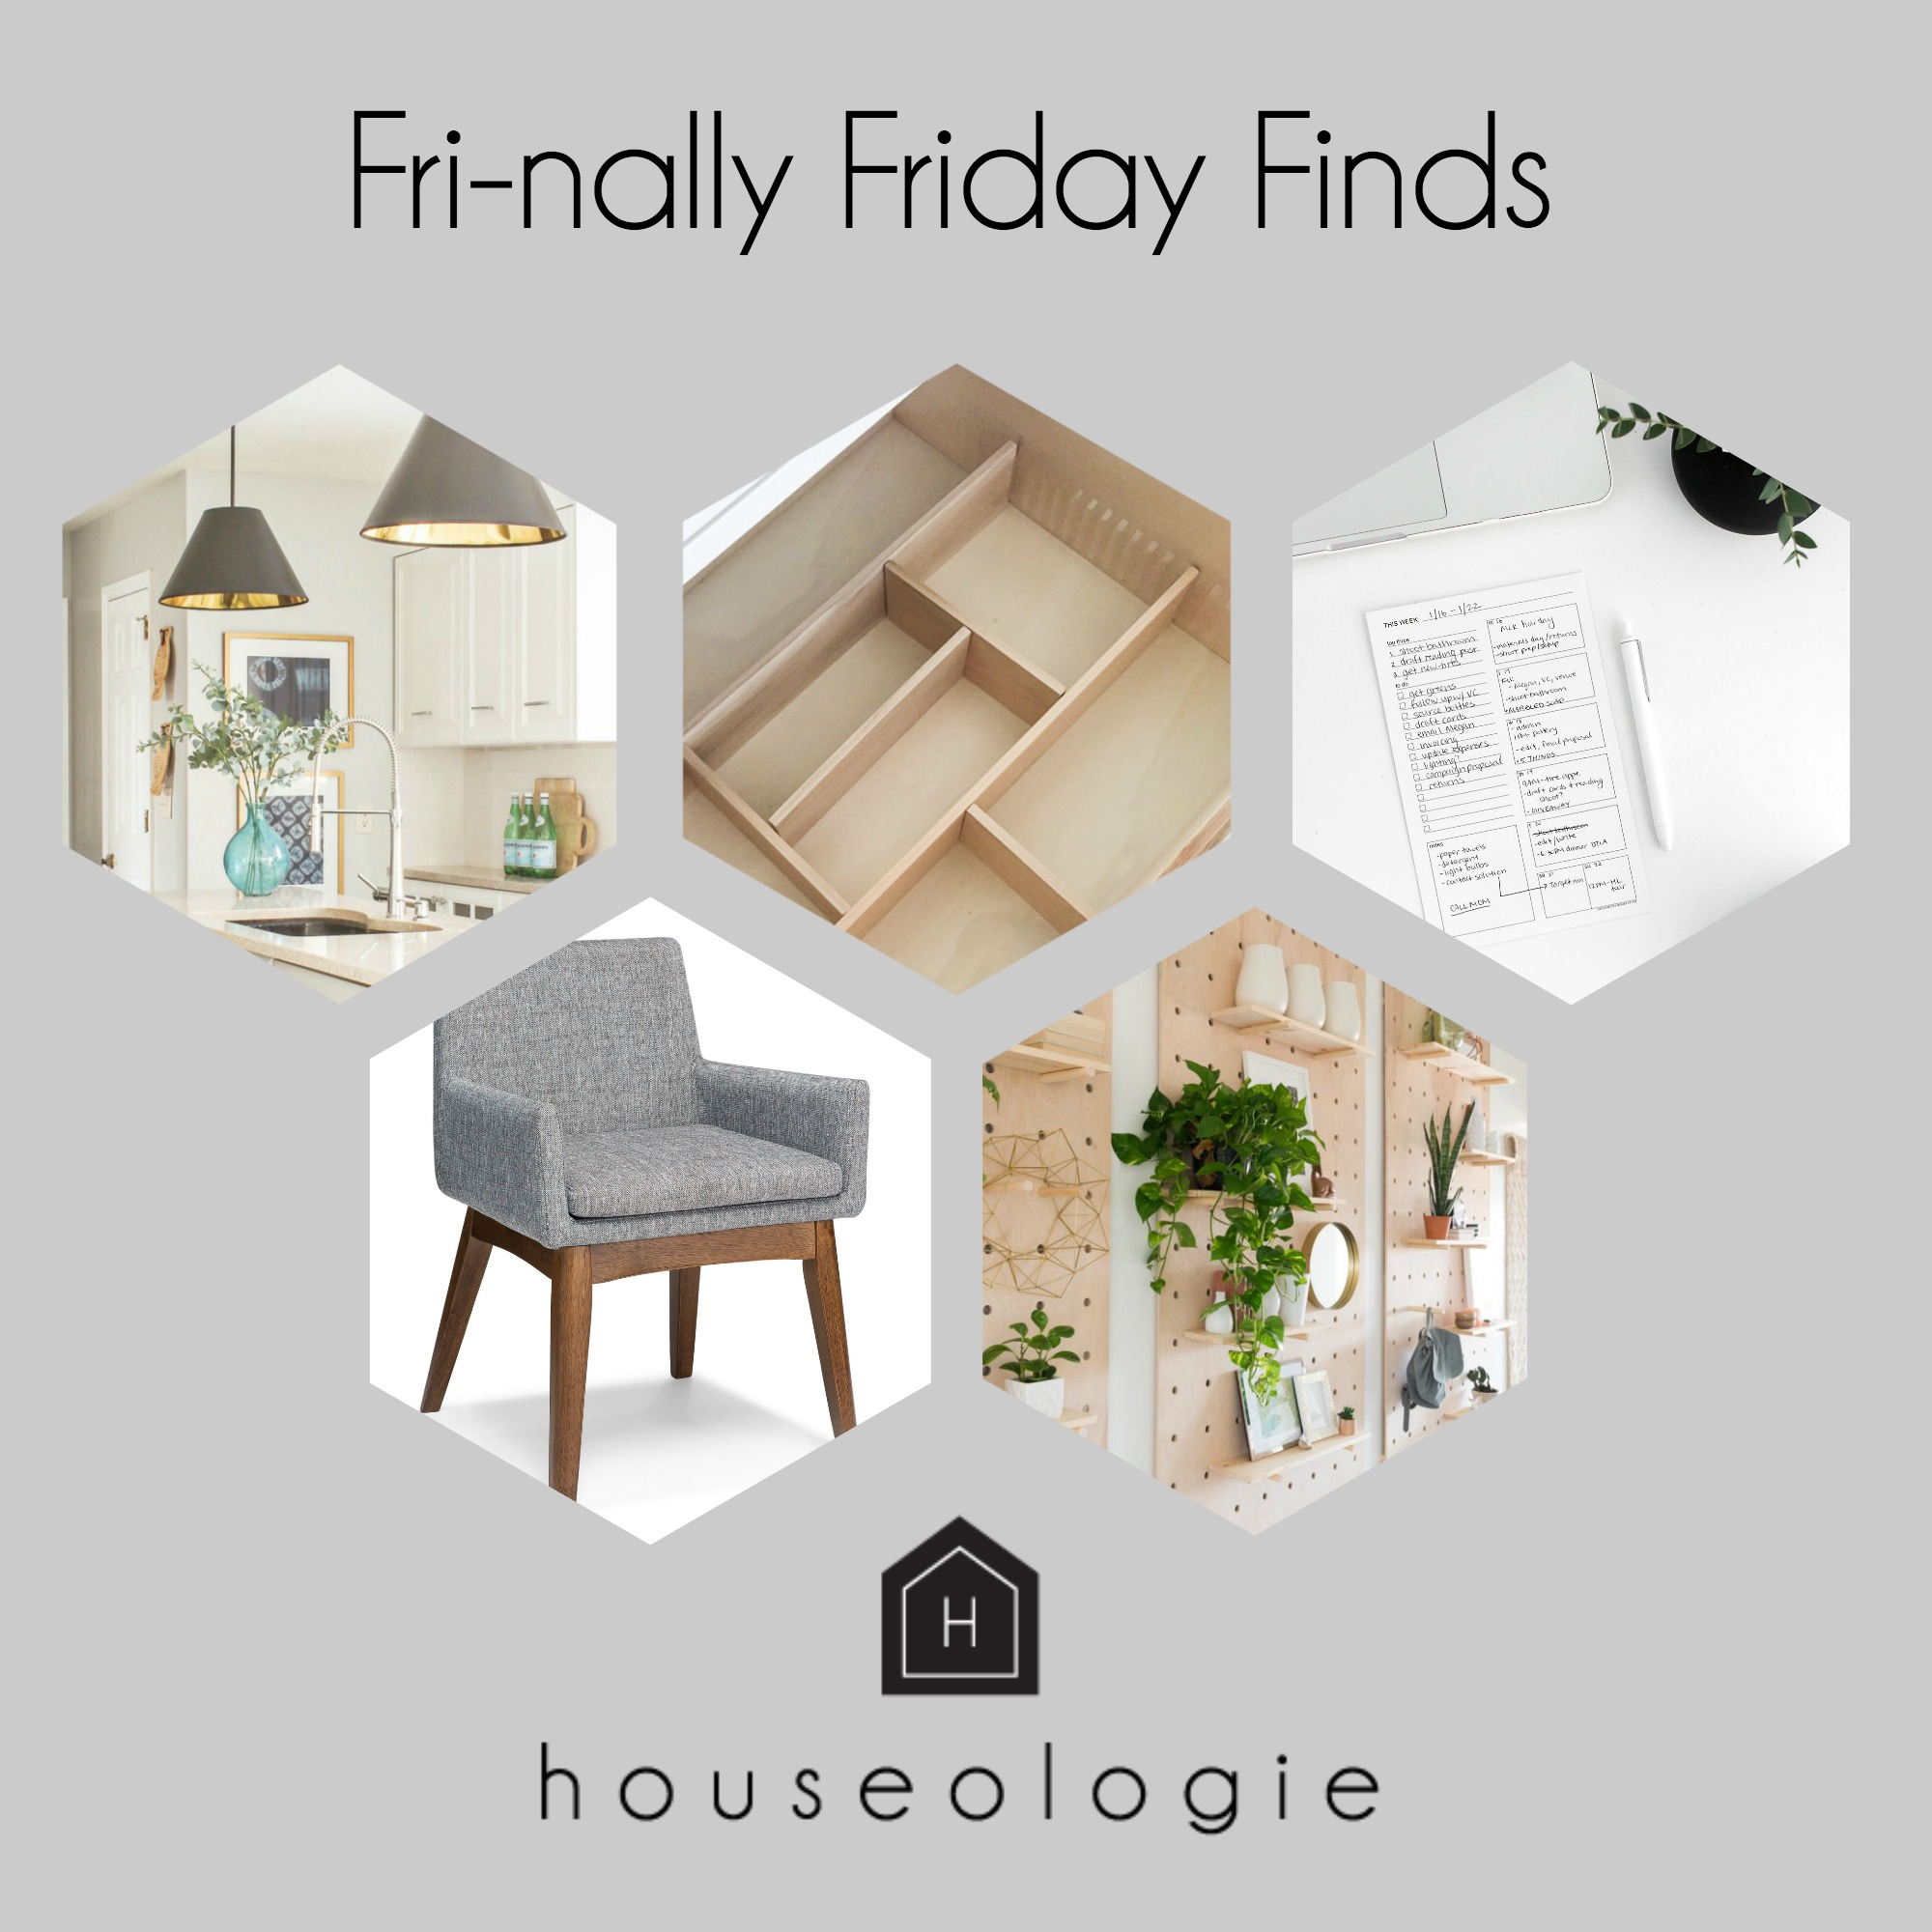 Friday Finds Working Trends Into Your Home Decor: Fri-nally Friday Finds